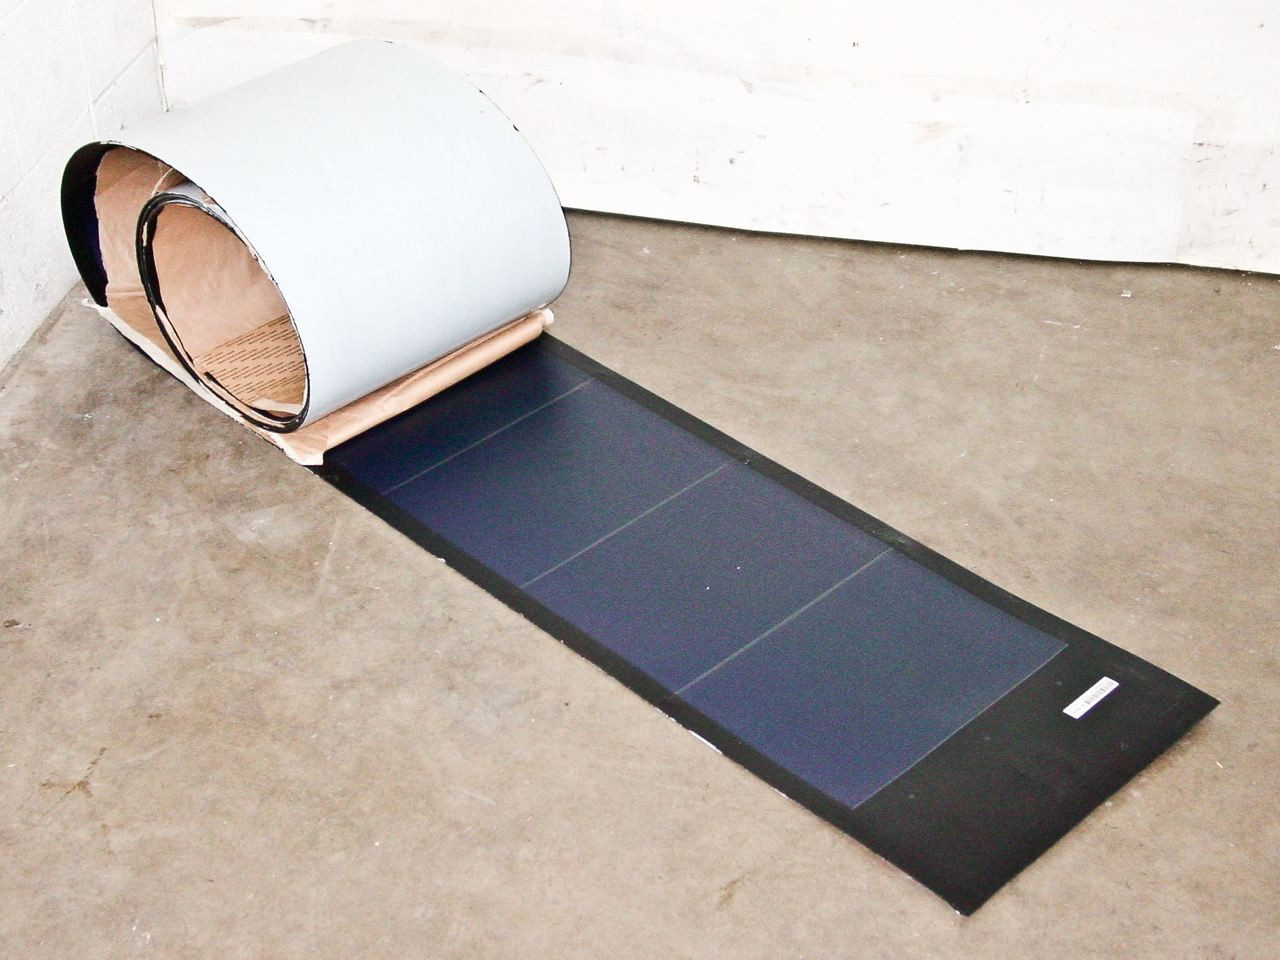 Uni Solar Pvl 136b Flexible Amorphous Solar Panel 136